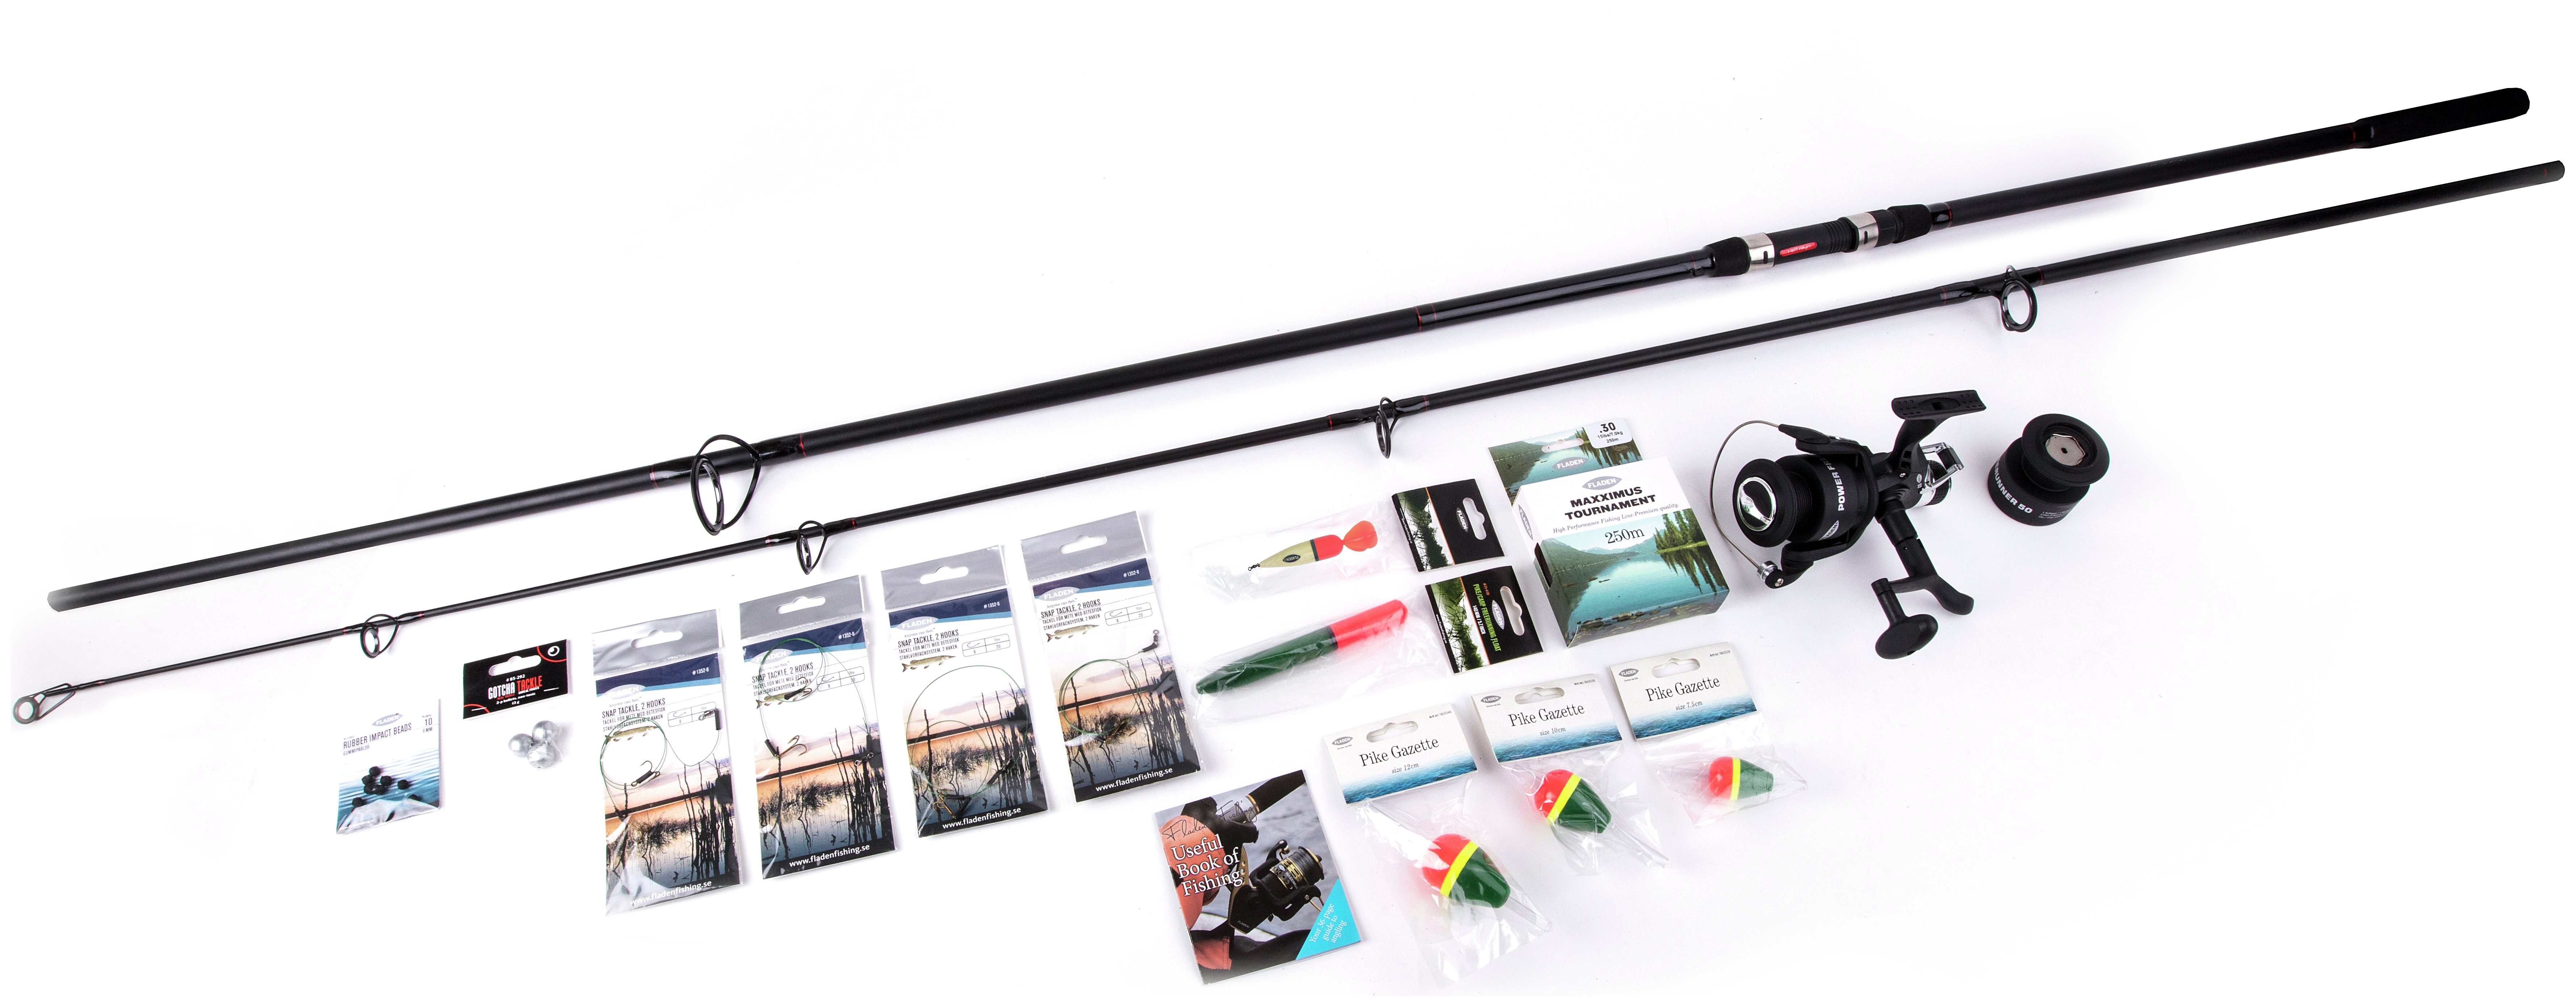 Image of Fladen - 12ft Pike Fishing Rod & Reel Set & Accessories